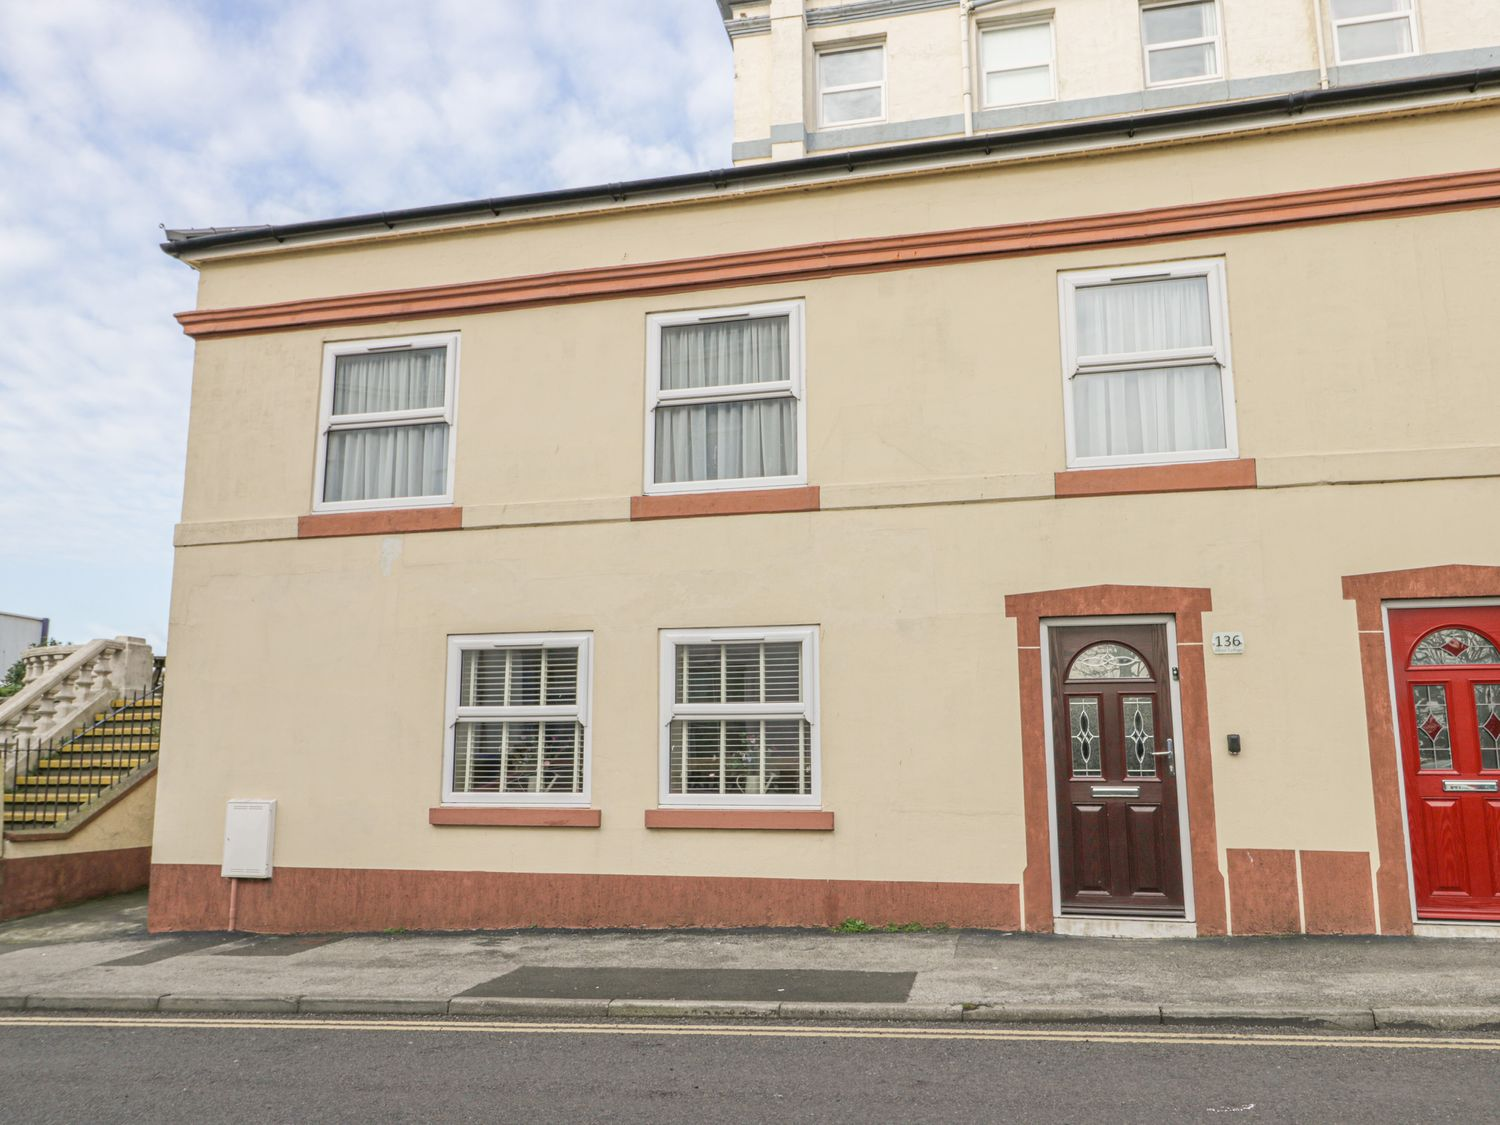 136 Castle Road - Whitby & North Yorkshire - 1035280 - photo 1